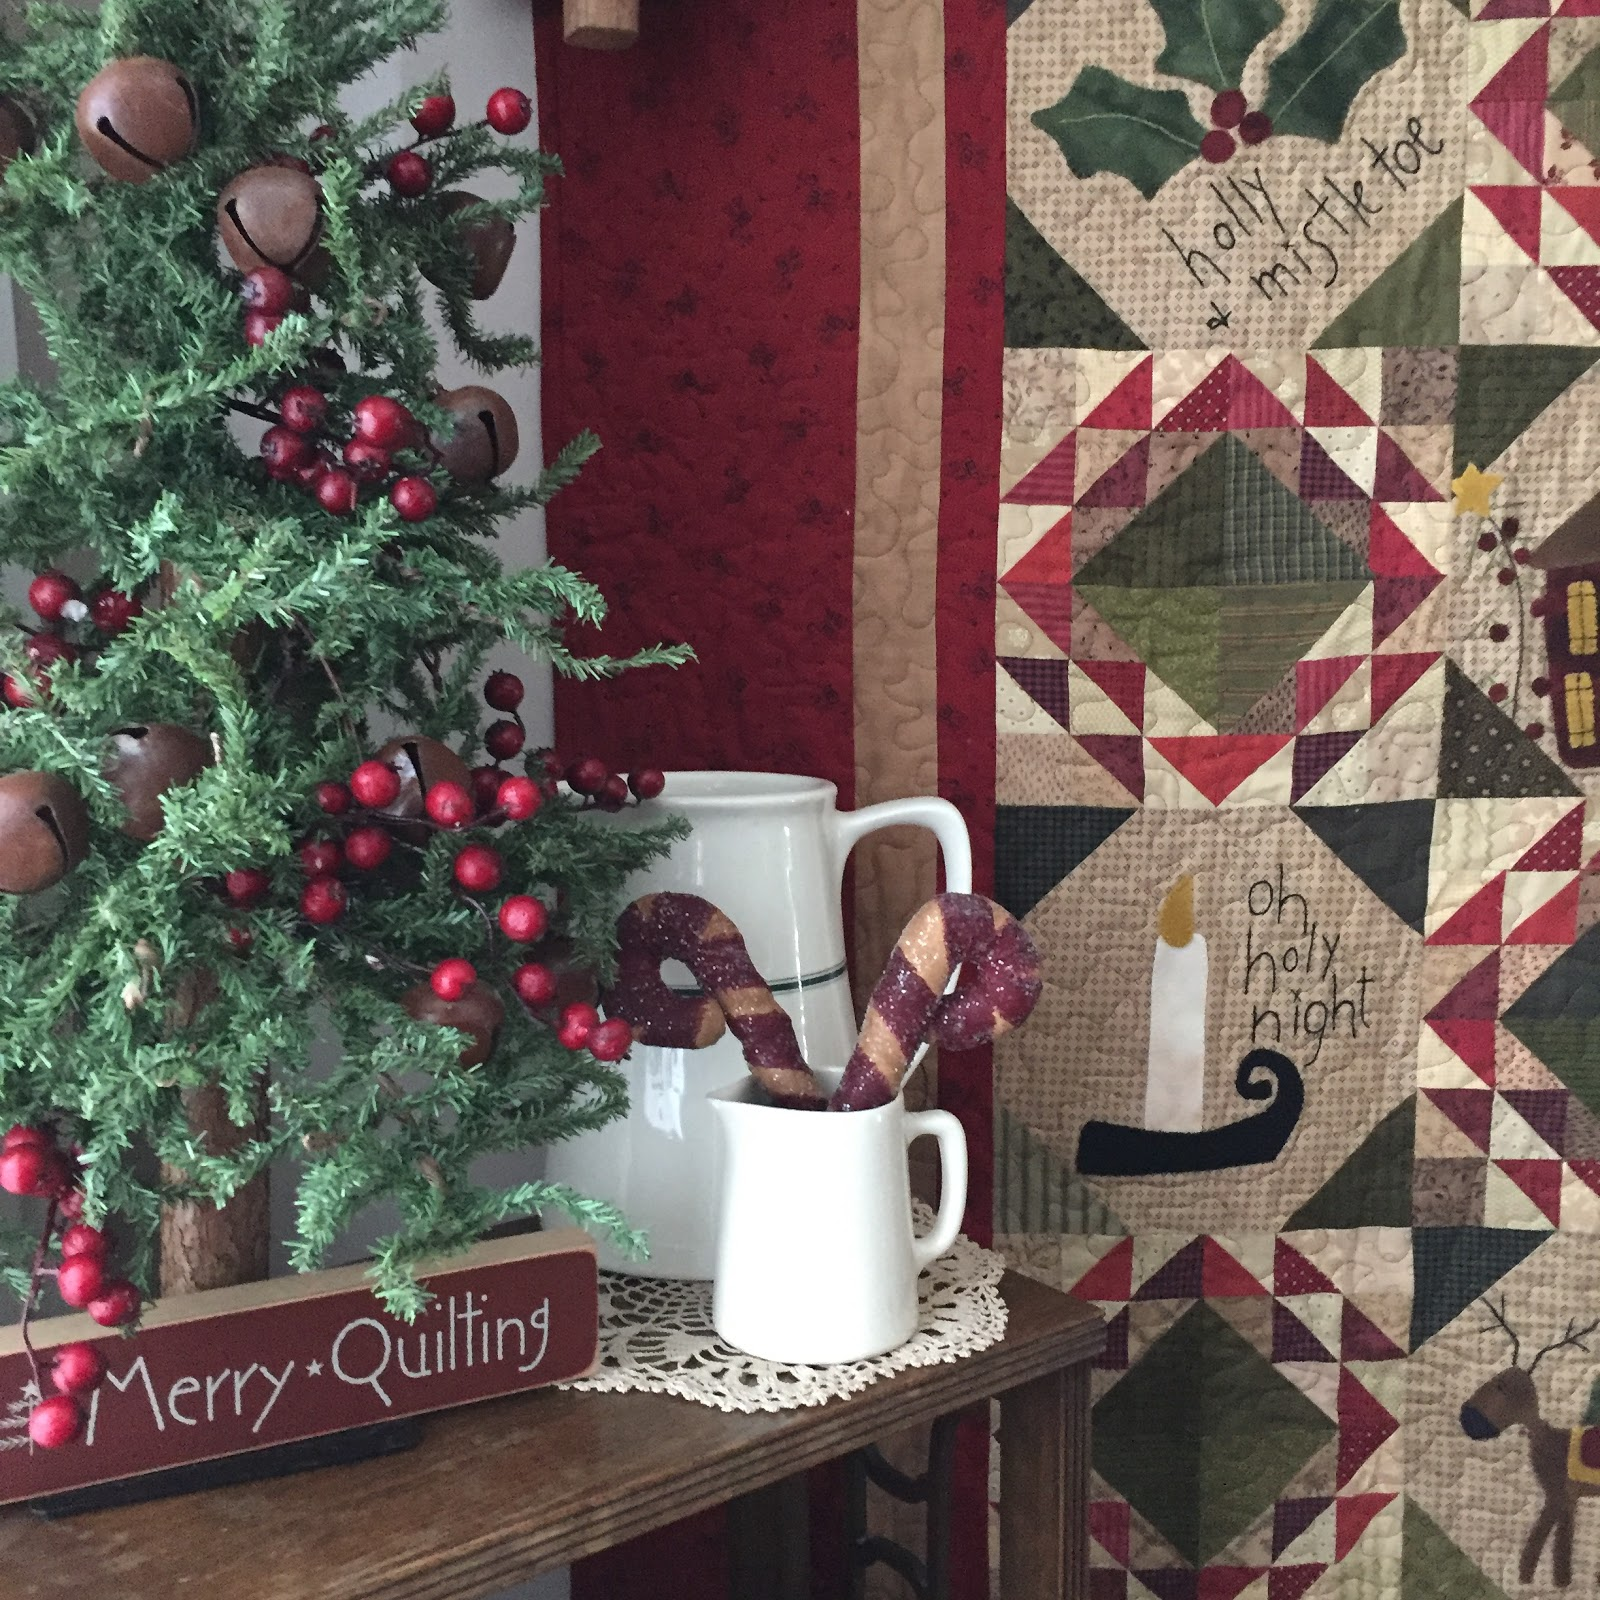 Keeping Christmas All The Year: Sweet P Quilting And Creations